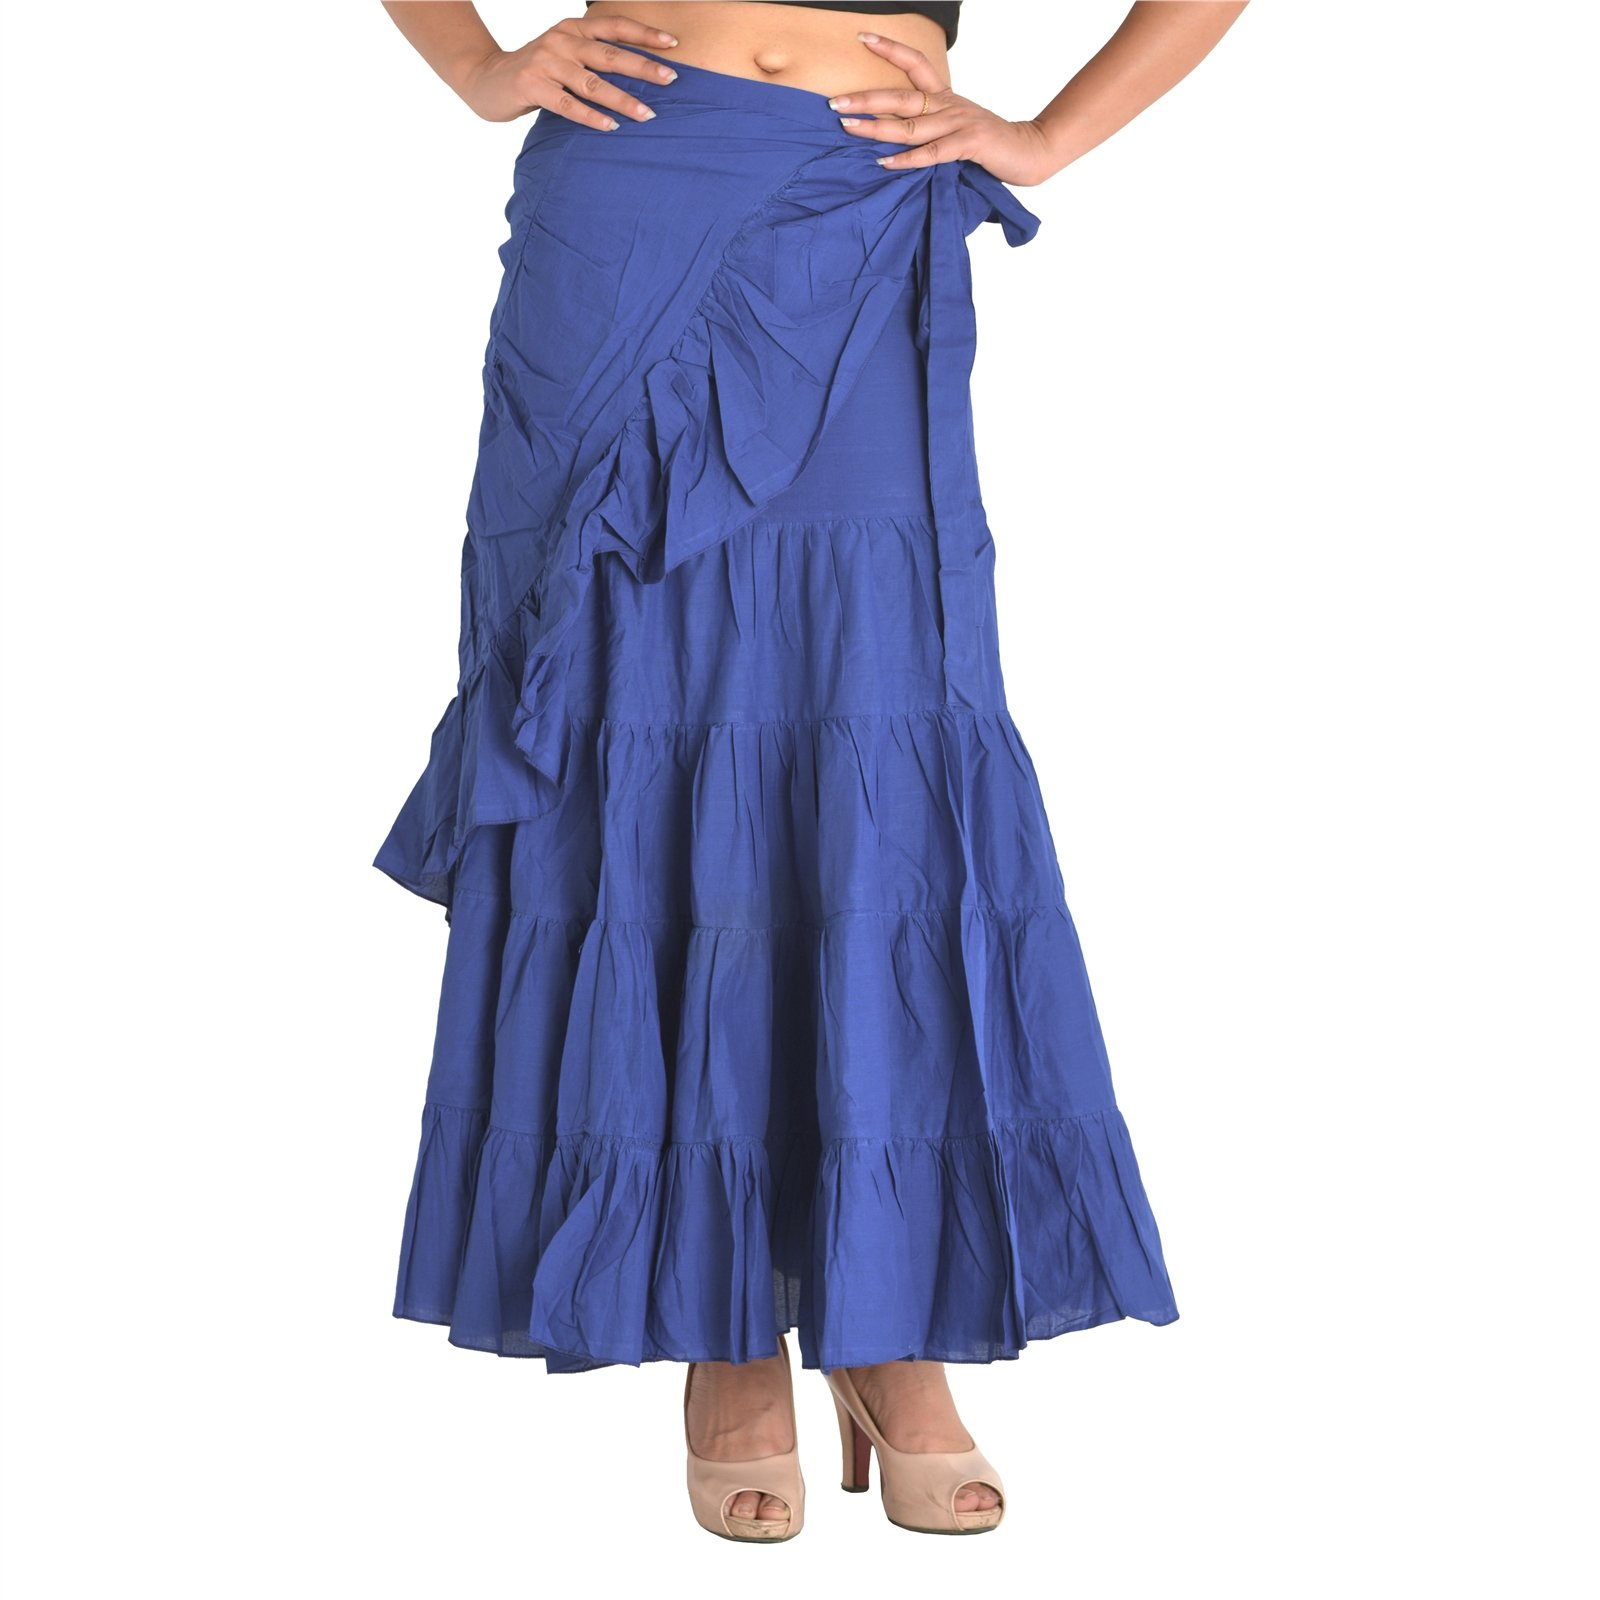 SNS Blue Cotton Solid Long Wraparound Skirt with Ruffle